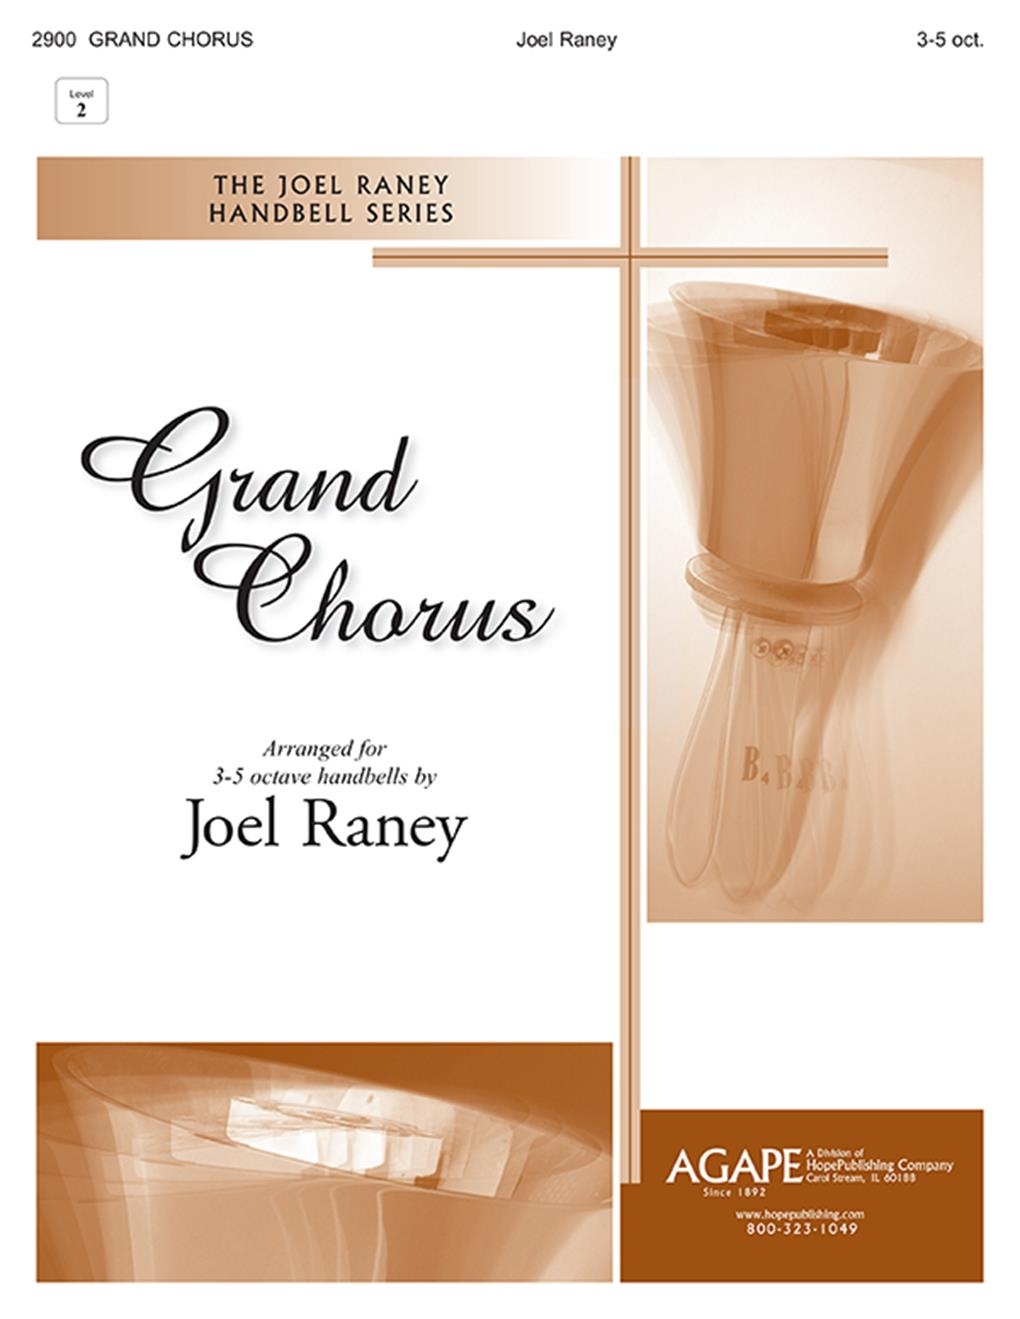 Grand Chorus - 3-5 Oct. Cover Image